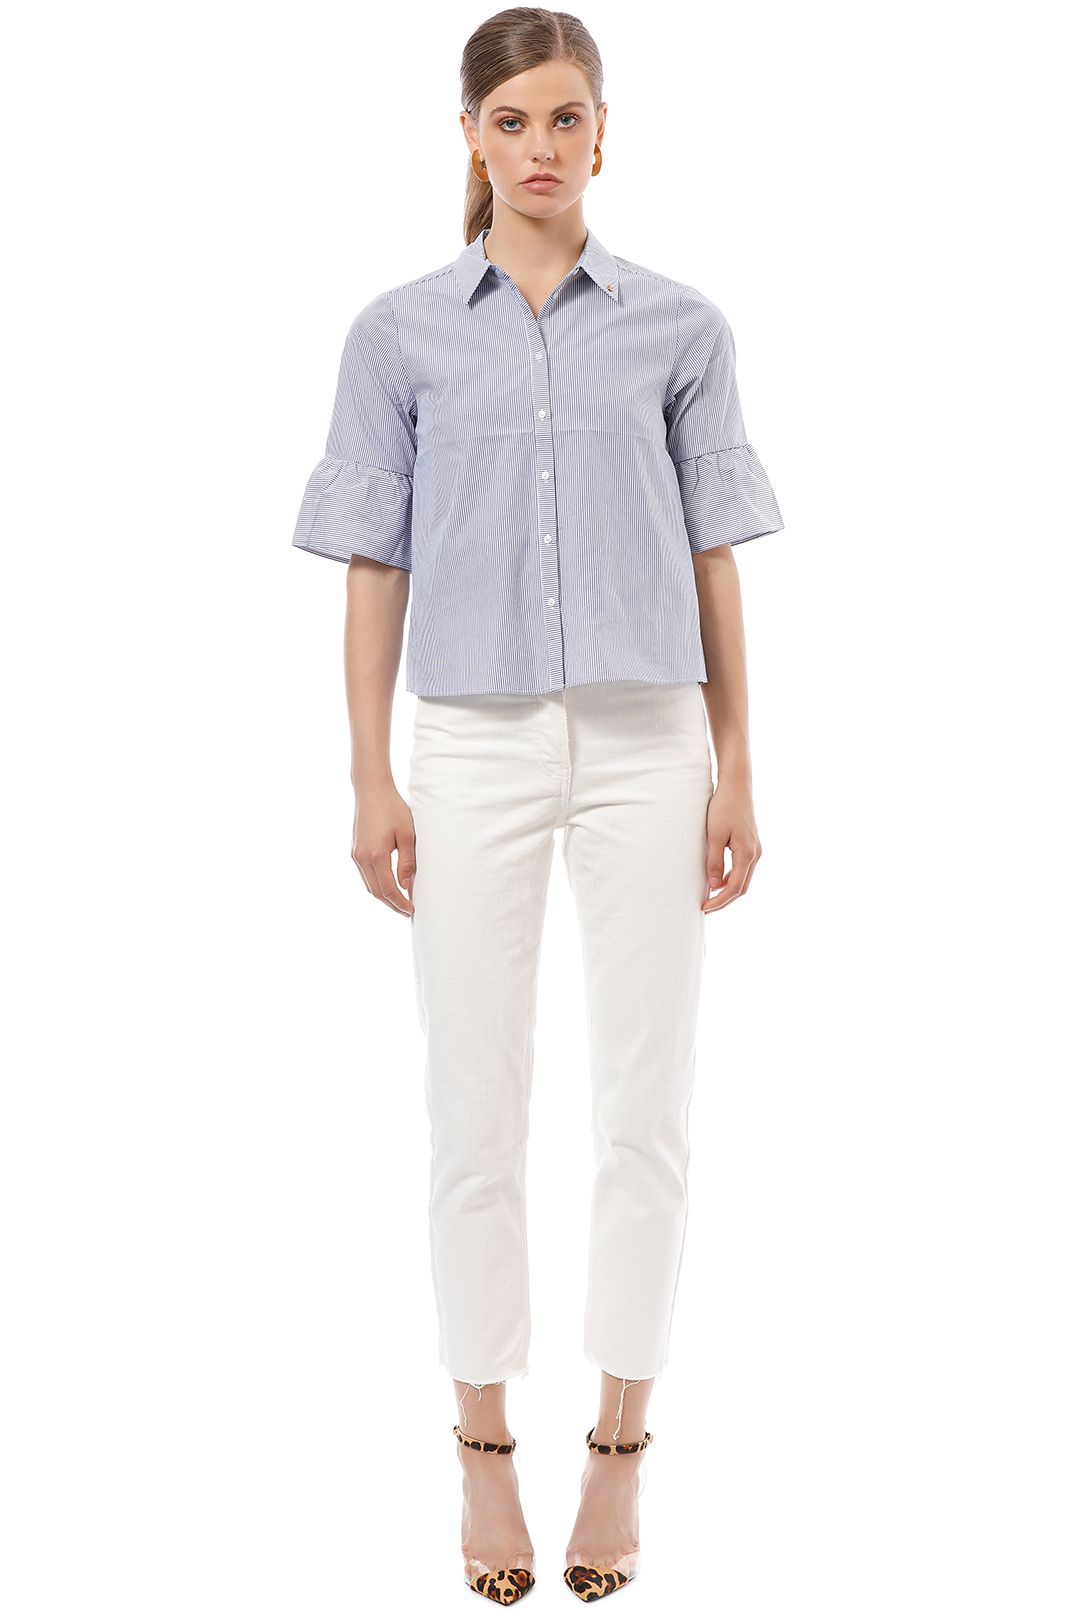 Scotch & Soda - Special Sleeve Ruffle Shirt - Stripe - Front